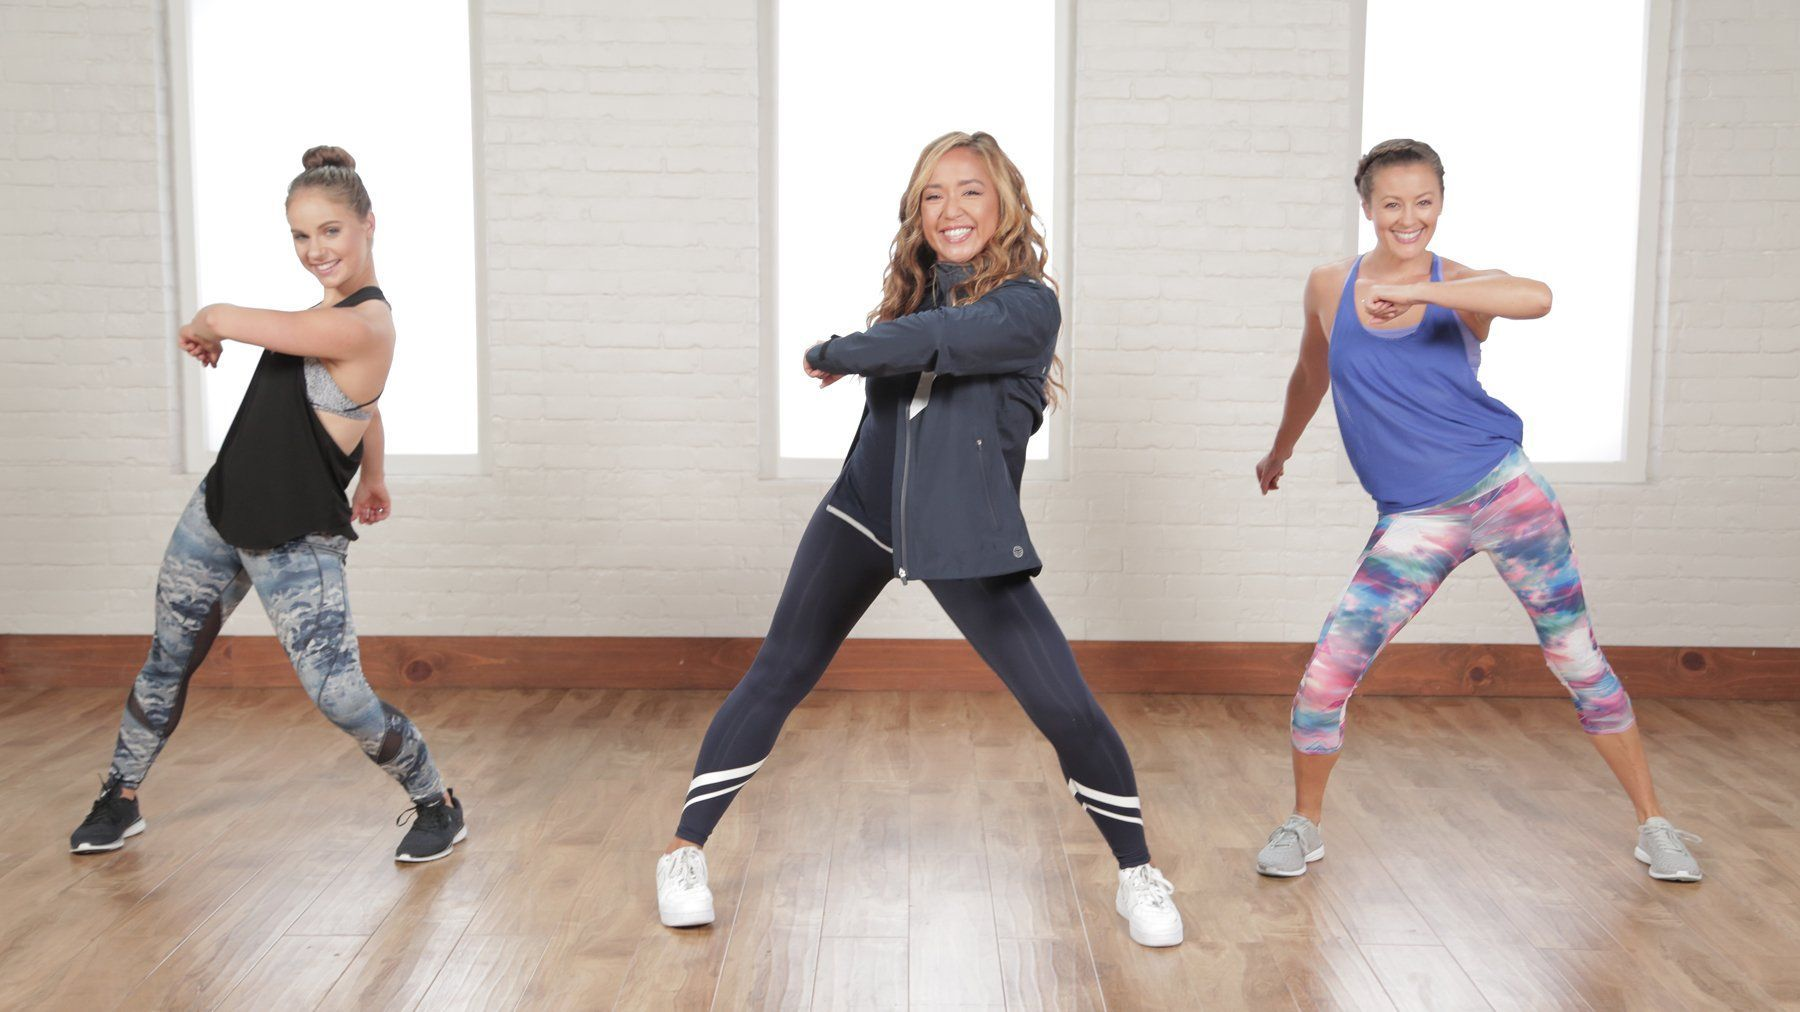 Disturbing Baby Care Myths That Just Won't Go Away This 20-Minute Cardio Dance Workout Is a Seriously Fun Way to Burn Calories: Dancing might just be the most fun cardio option out there.This 20-Minute Cardio Dance Workout Is a Seriously Fun Way to Burn Calories: Dancing might just be the most fun cardio option out there.